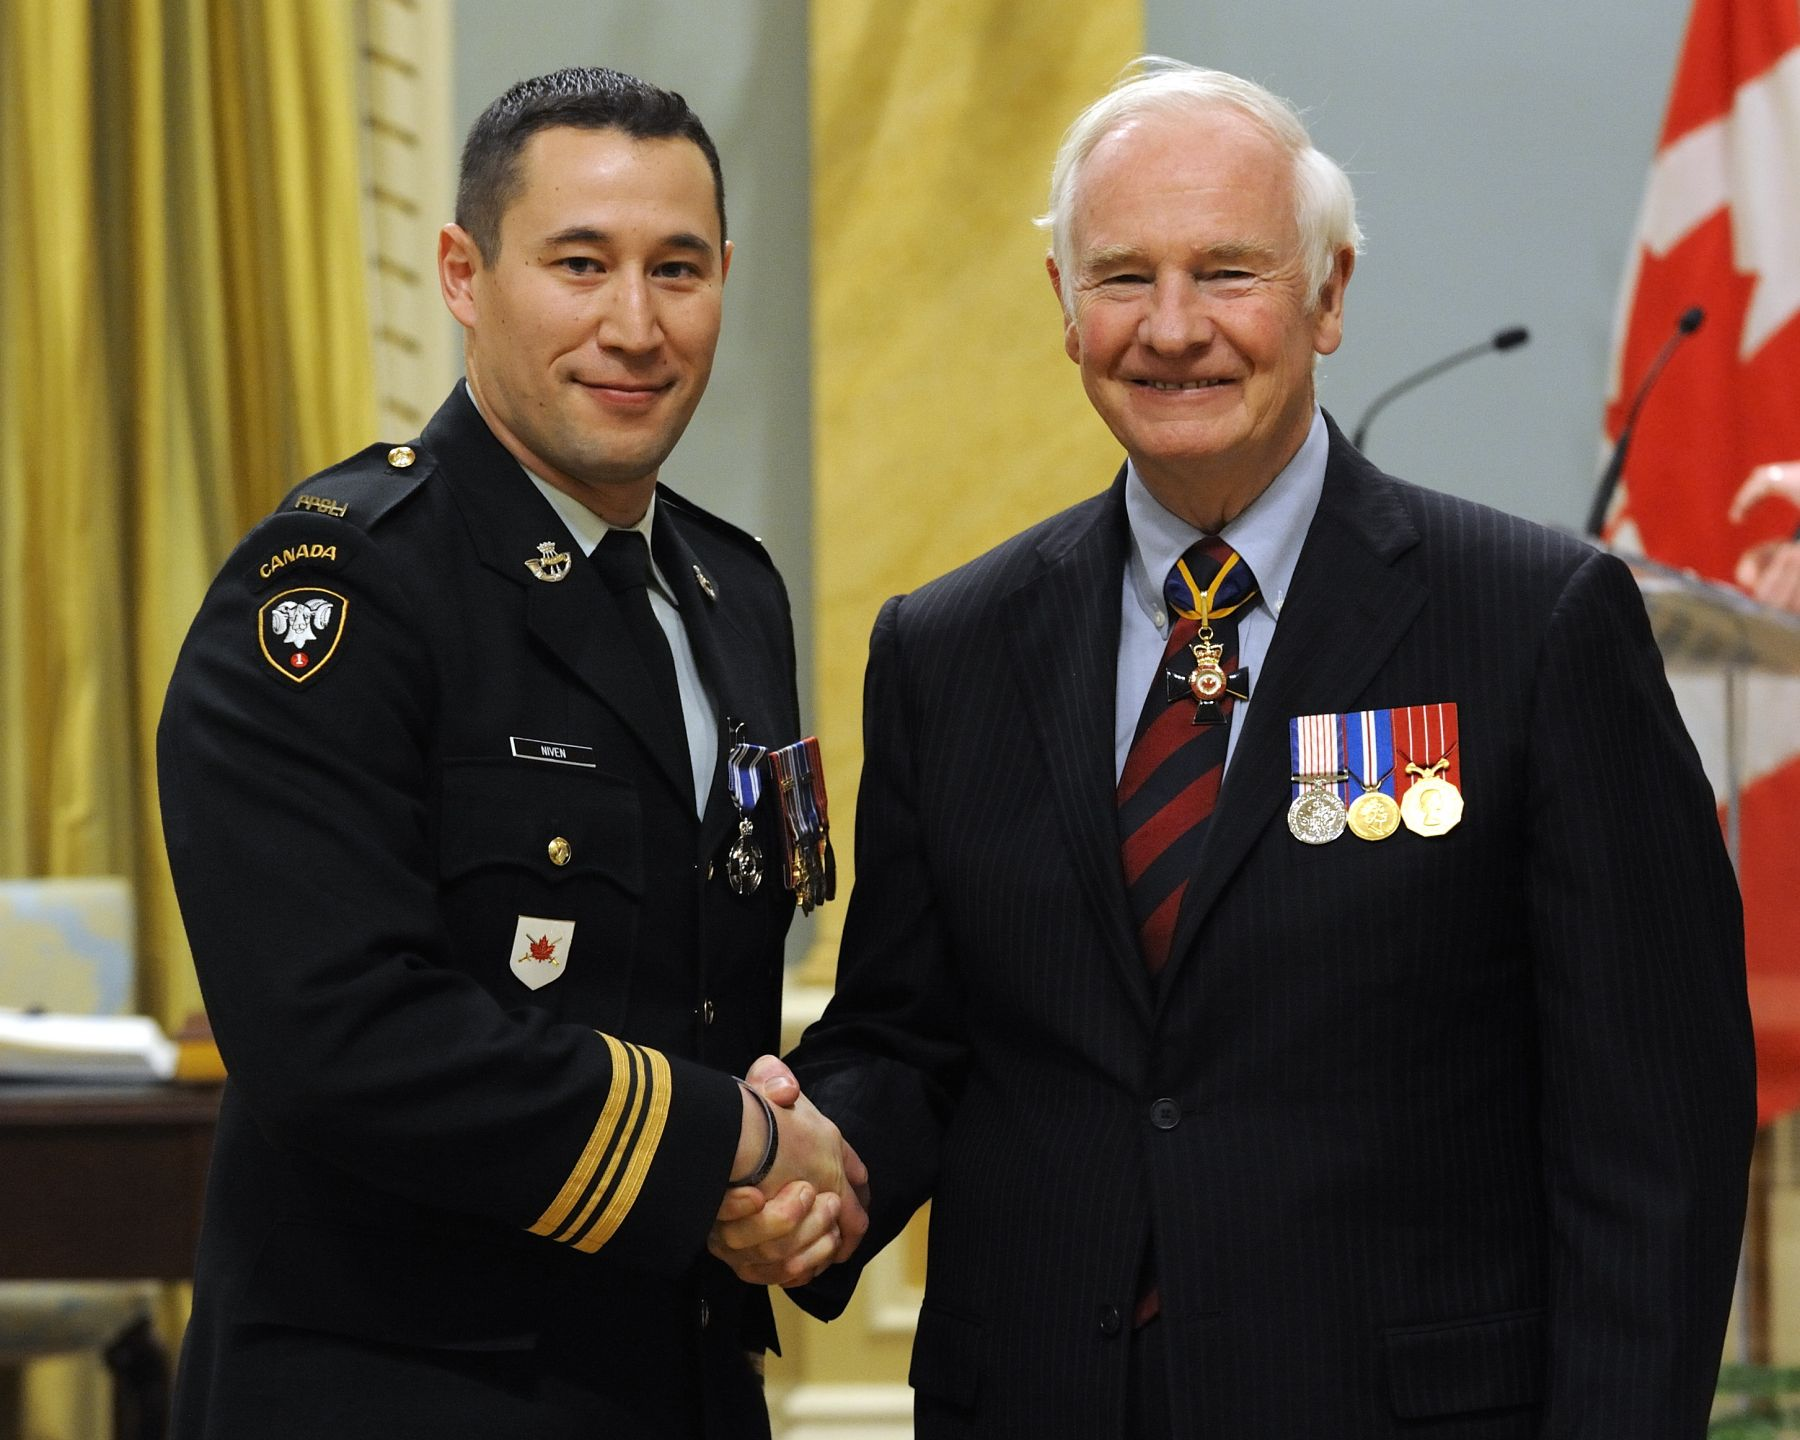 Major Wayne Kenneth Niven, M.S.M., C.D., received the Meritorious Service Medal (Military Division) from His Excellency. As officer commanding Delta Company from October 2009 to May 2010, Major Niven distinguished himself as a first-rate combat leader. Tasked with securing the volatile Nakhonay village, he worked with his Afghan counterpart to clear and hold the area. His ability to work effectively with Afghan officials influenced village elders who were initially resistant to security initiatives. An astute and skilful officer who fully embraced counter-insurgency doctrine, Major Niven and his superb leadership were critical to the battle group's operational success.